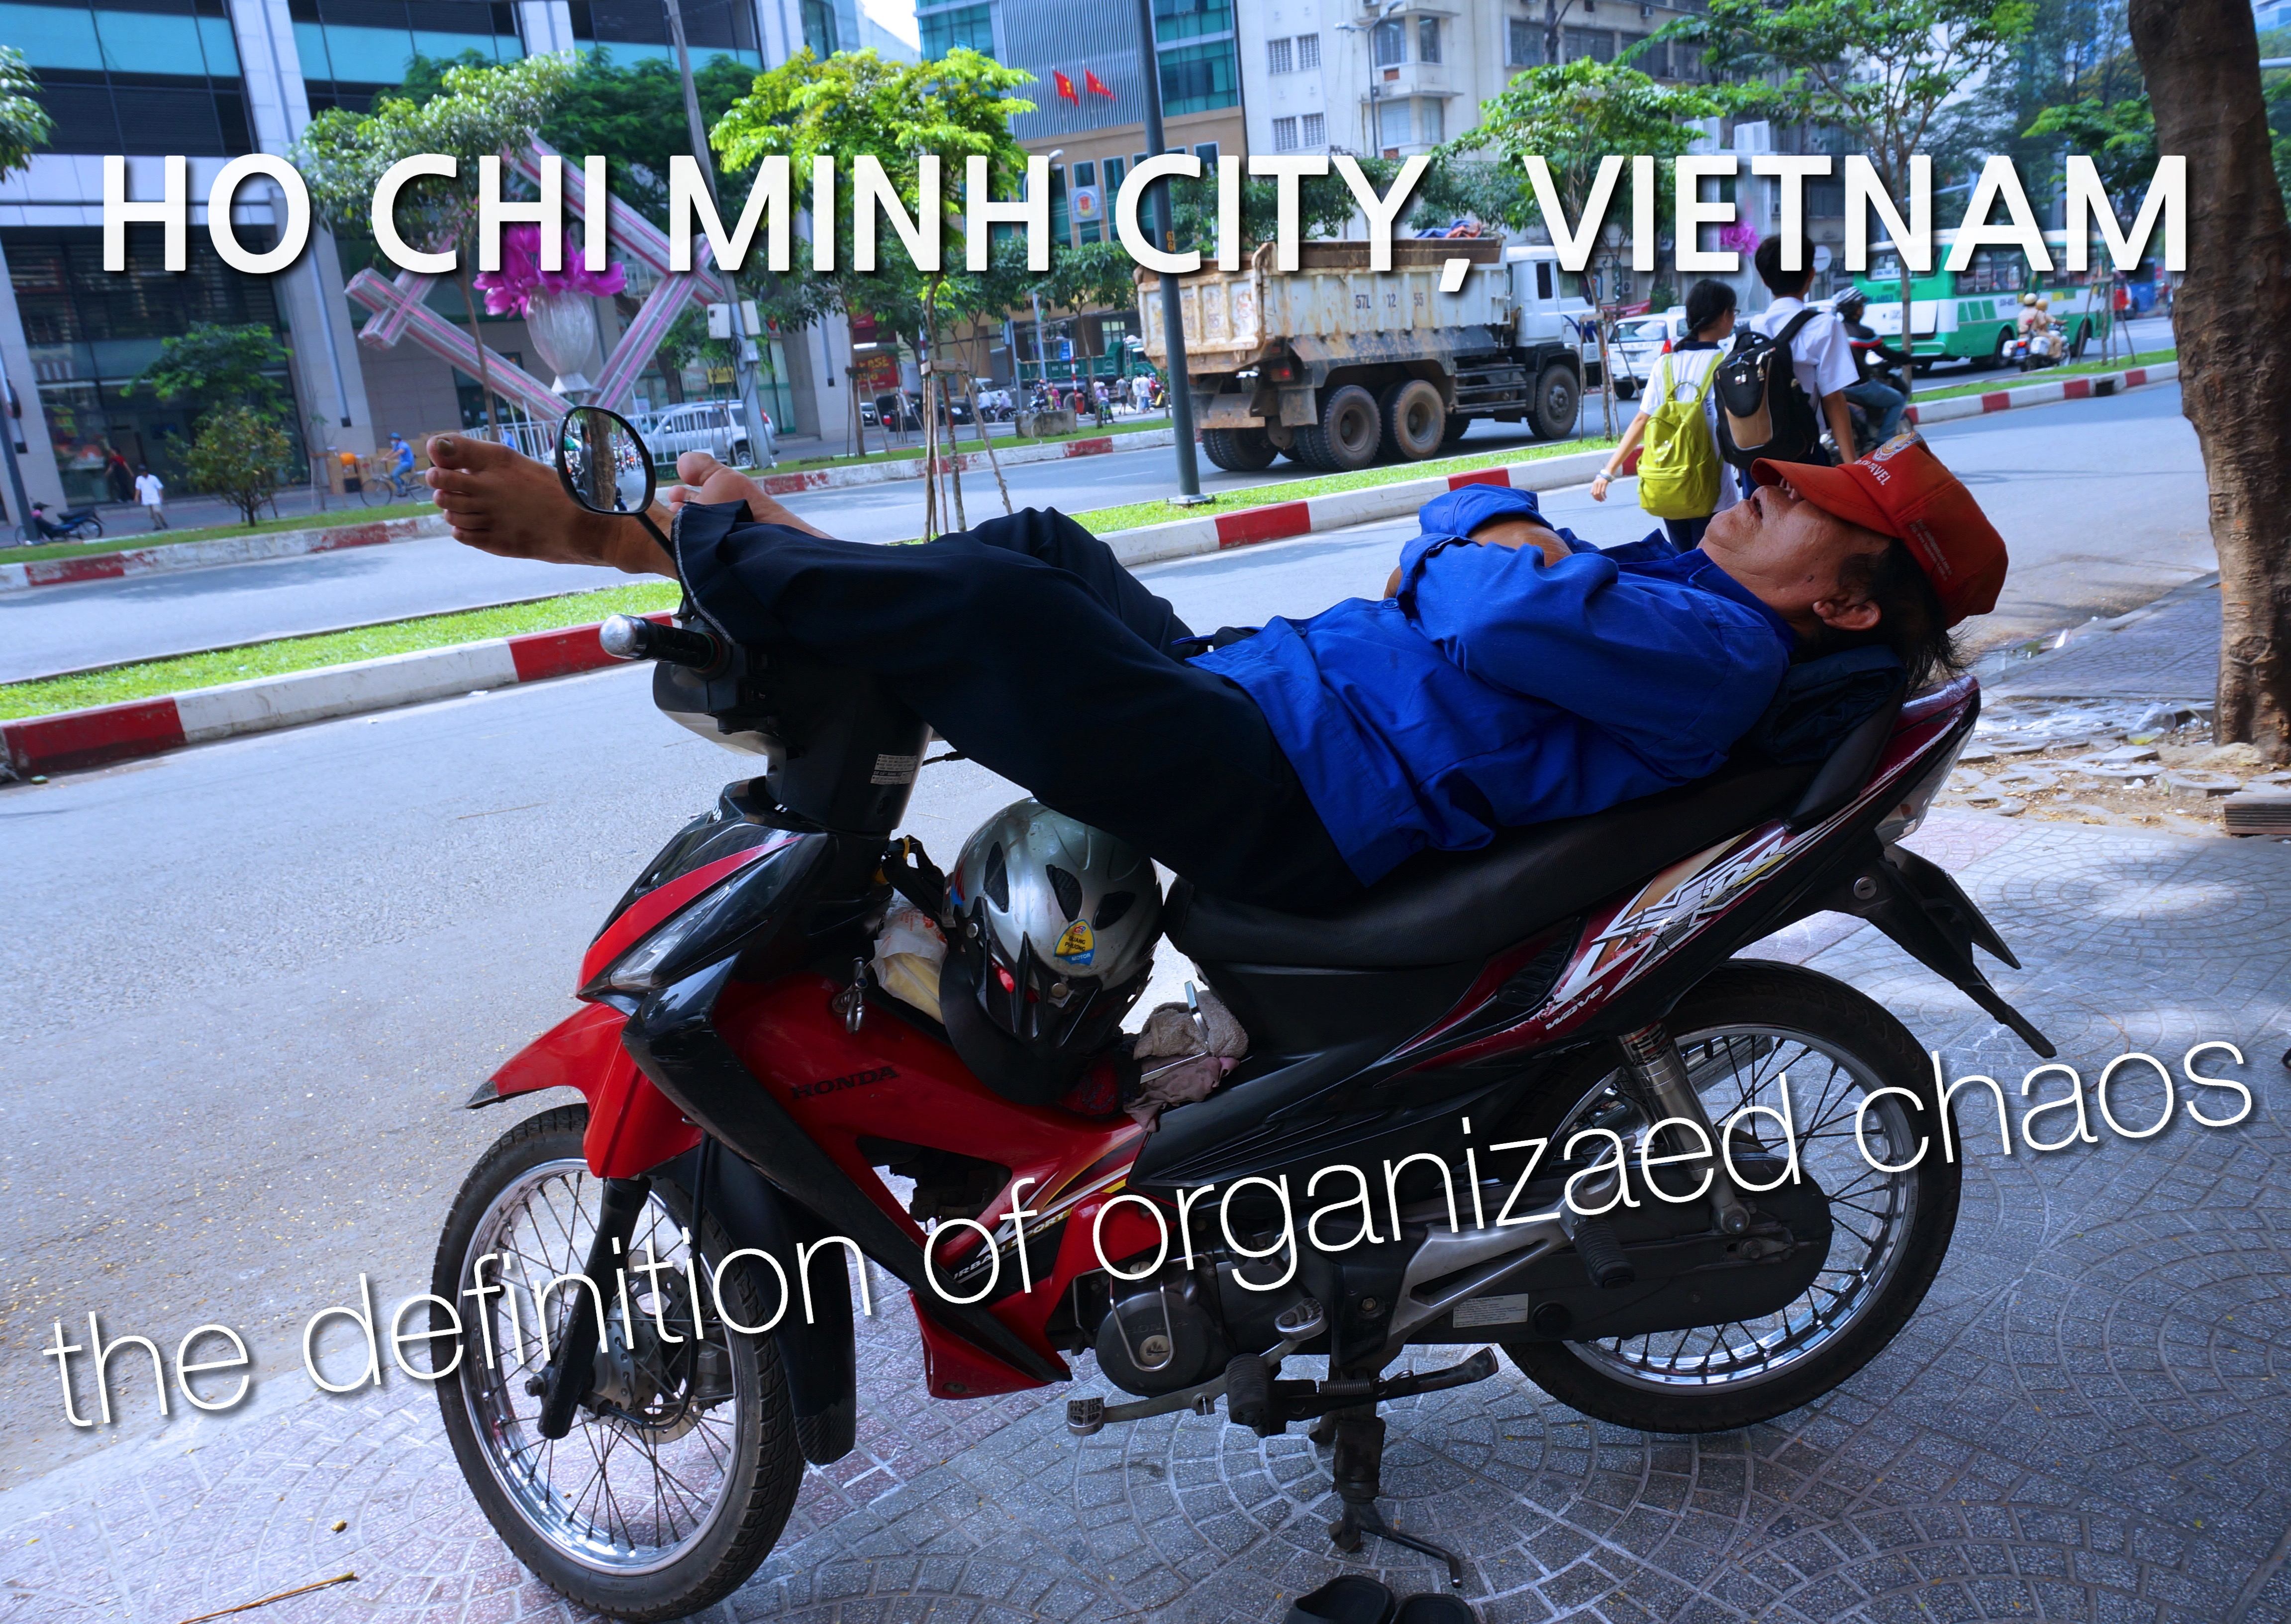 Ho Chi Minh City: The definition of organized chaos